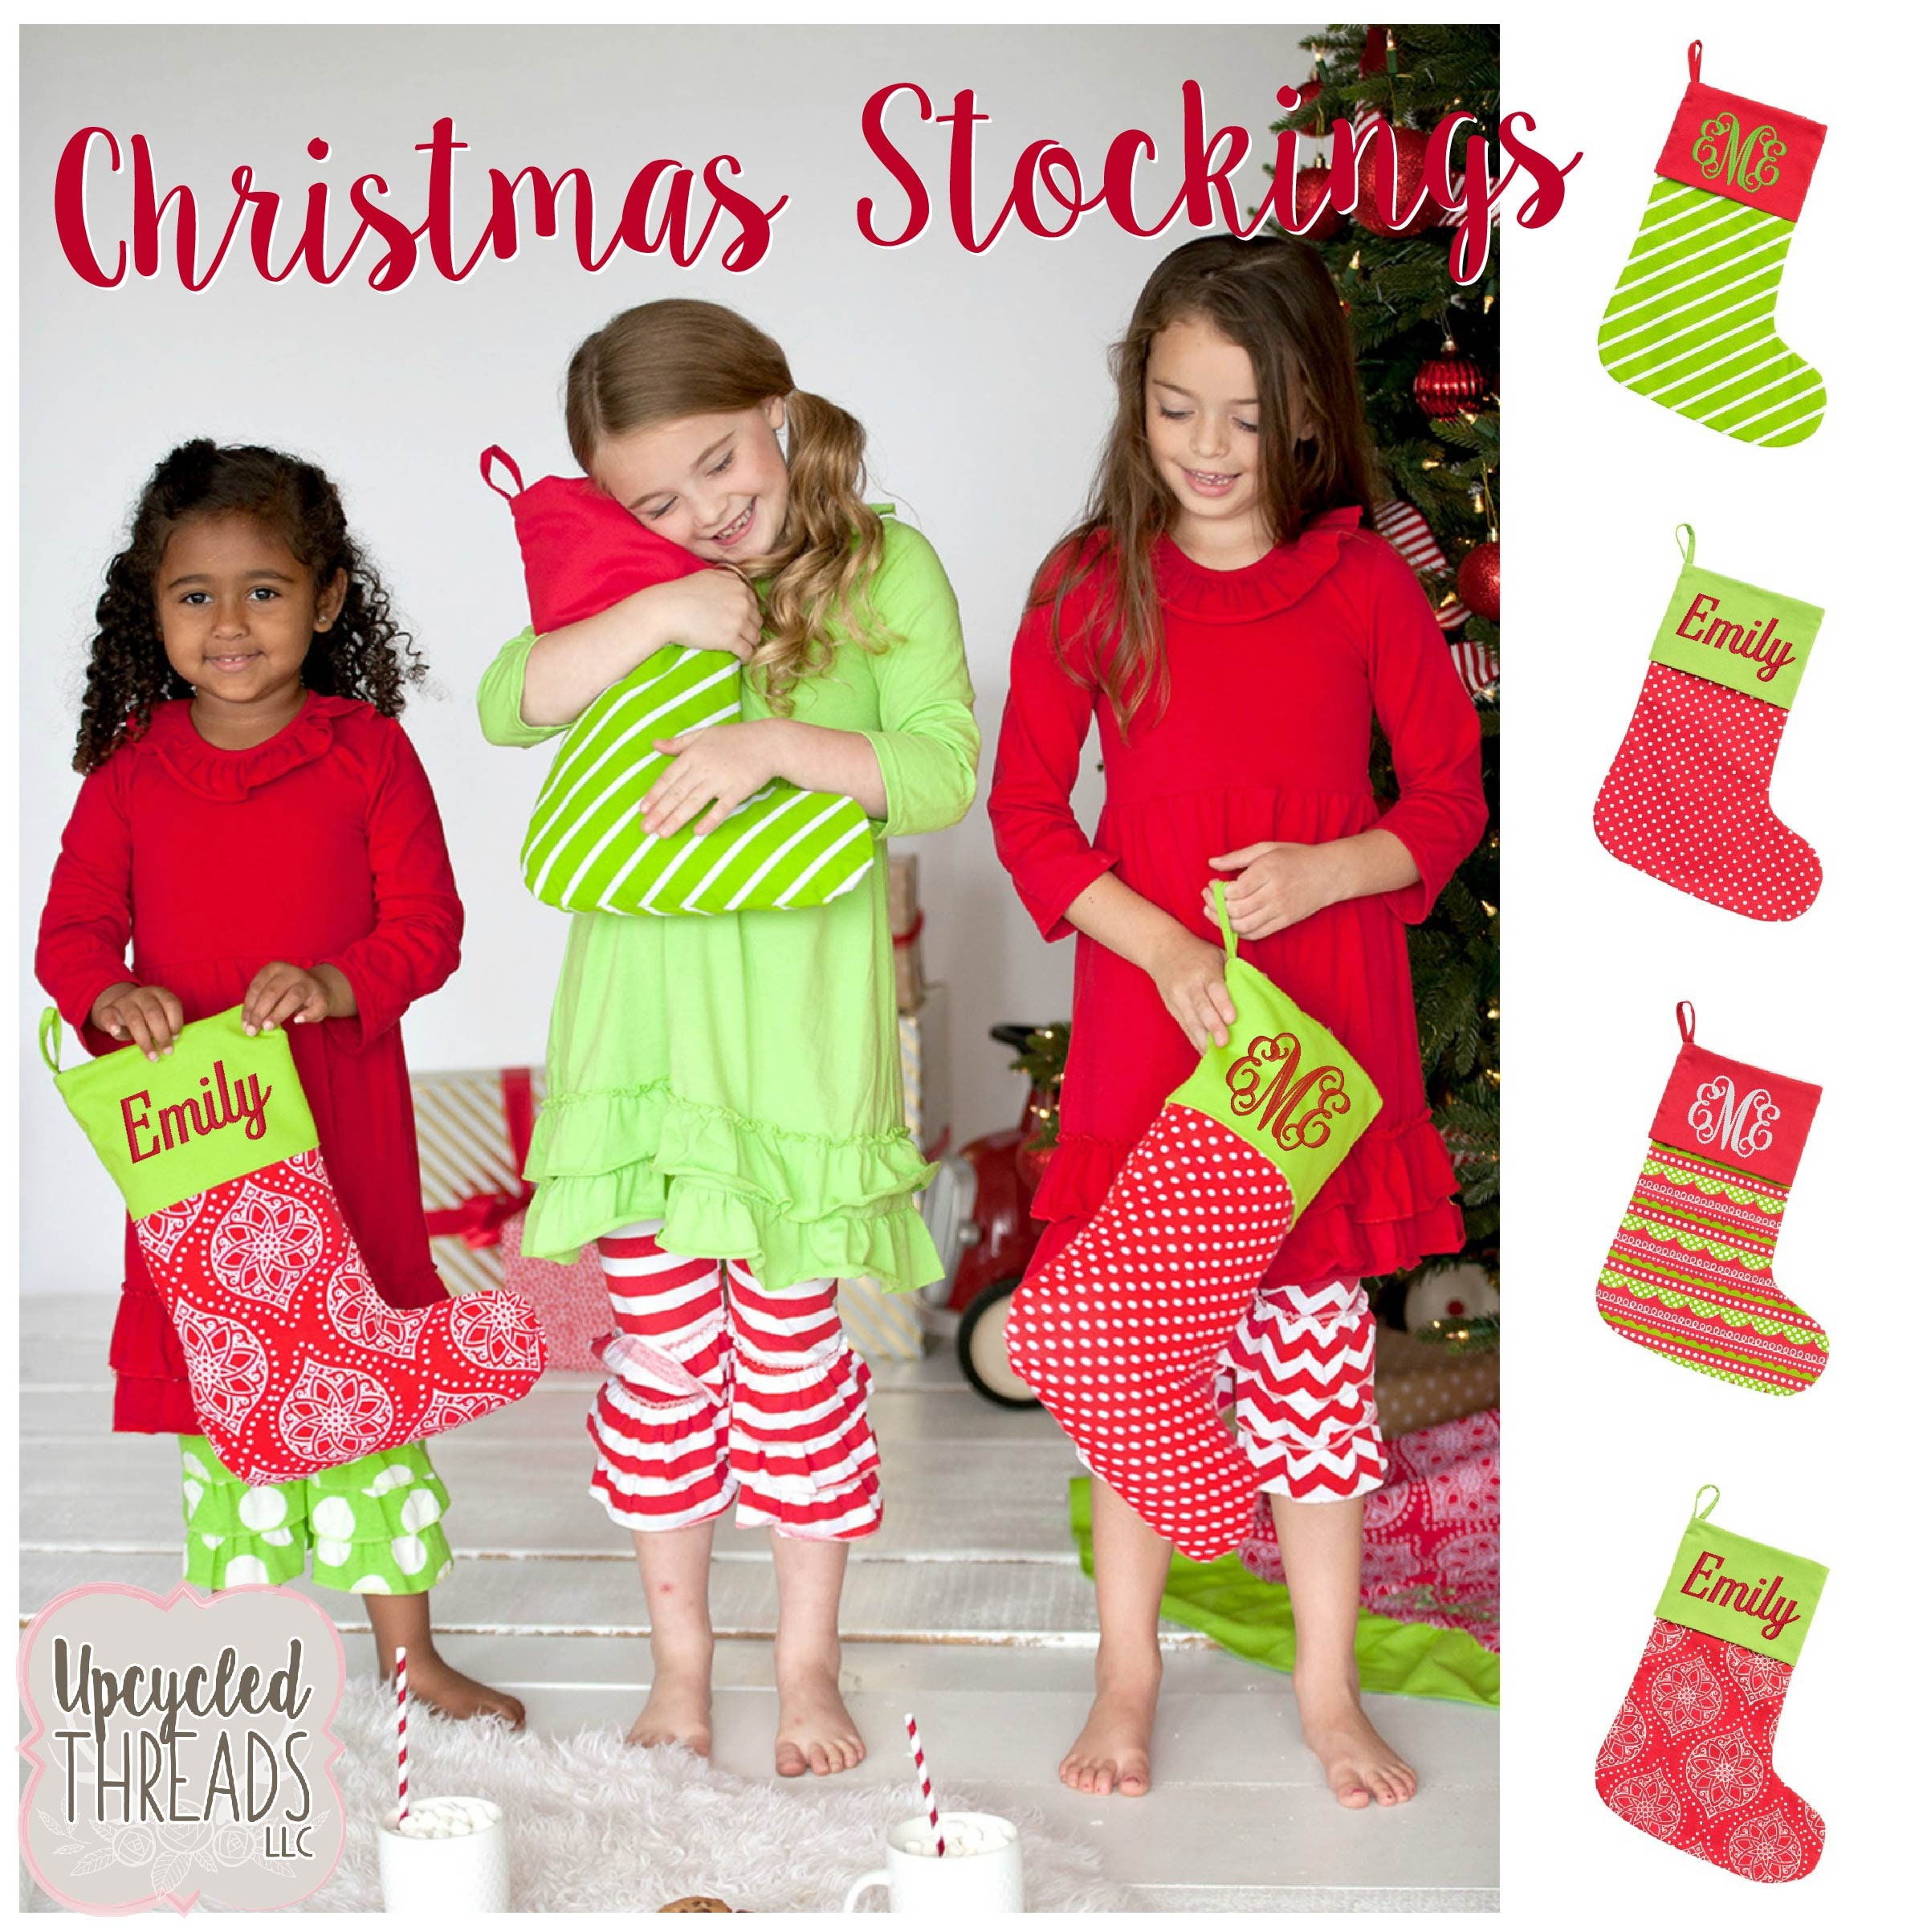 Personalized Christmas Stockings Family Stockings Monogrammed